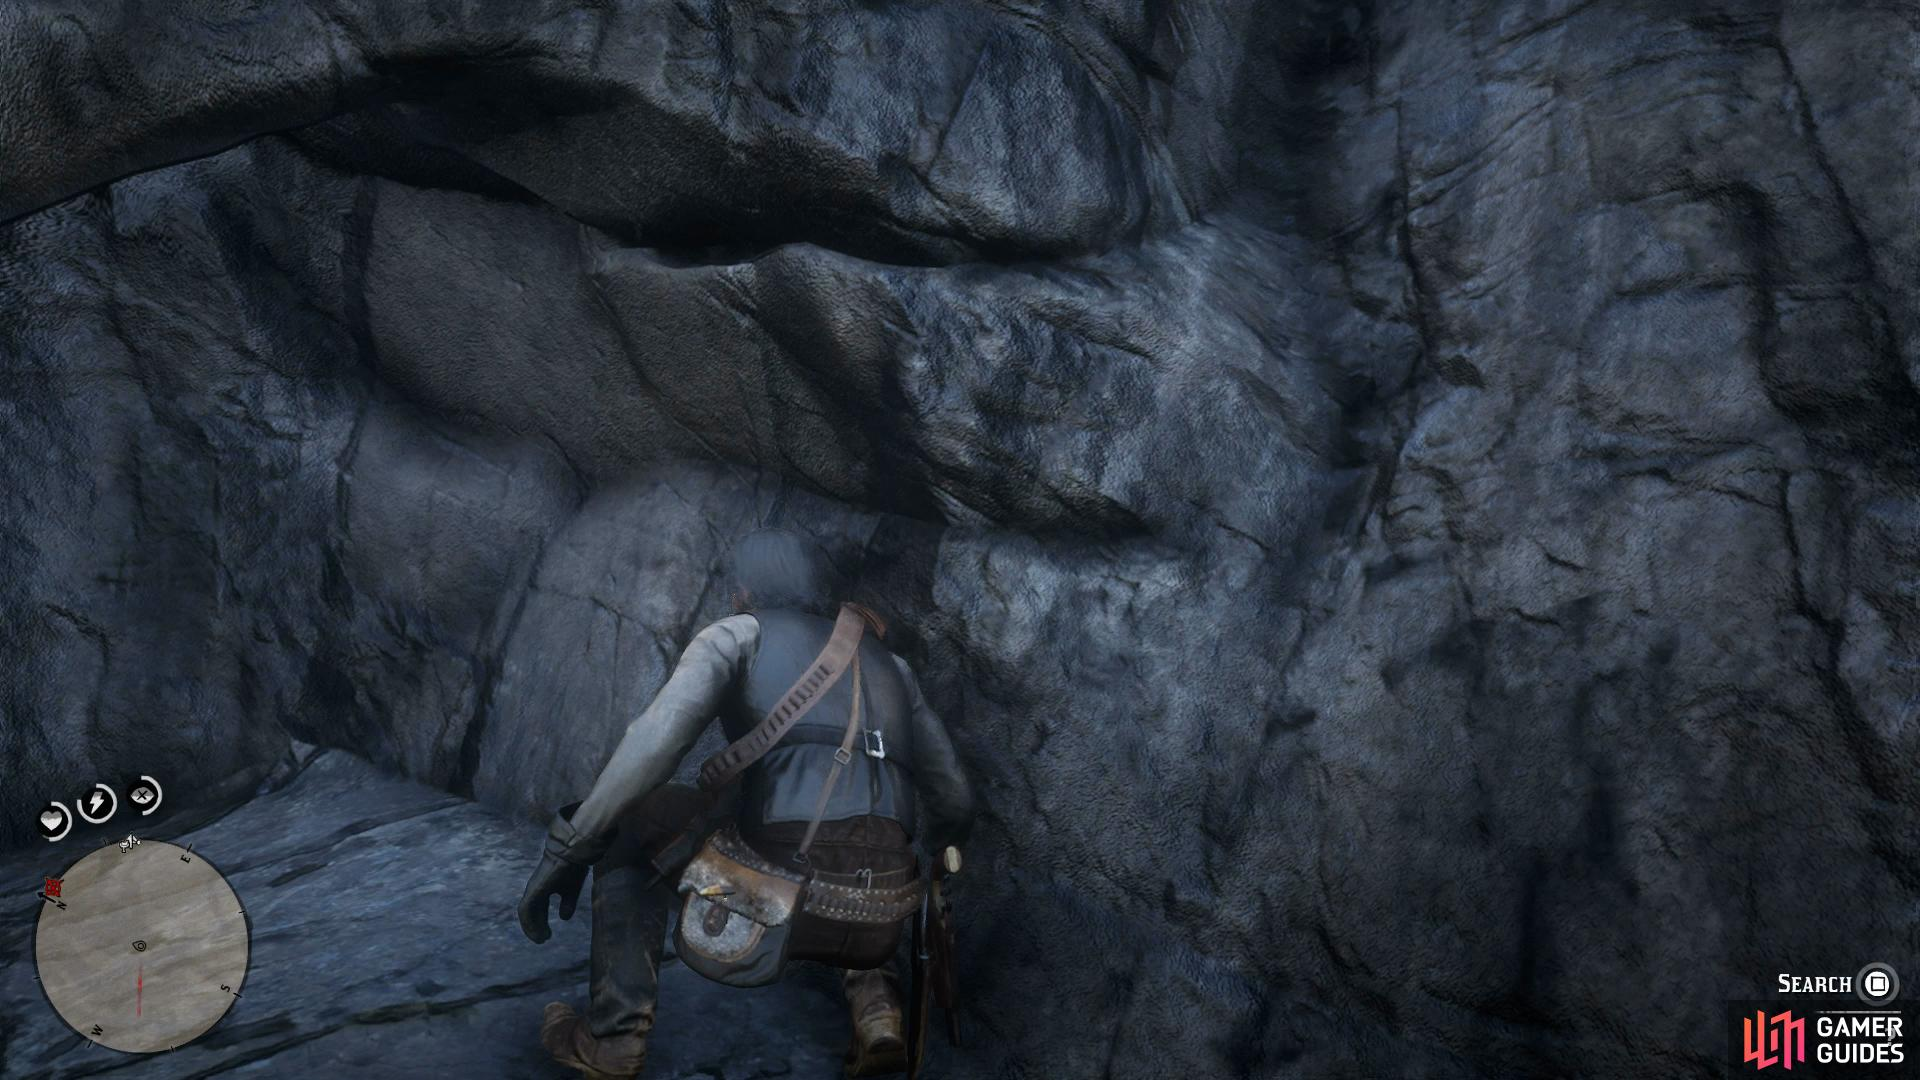 after leaping to one more rock, follow the path under the rocks to find the treasure.